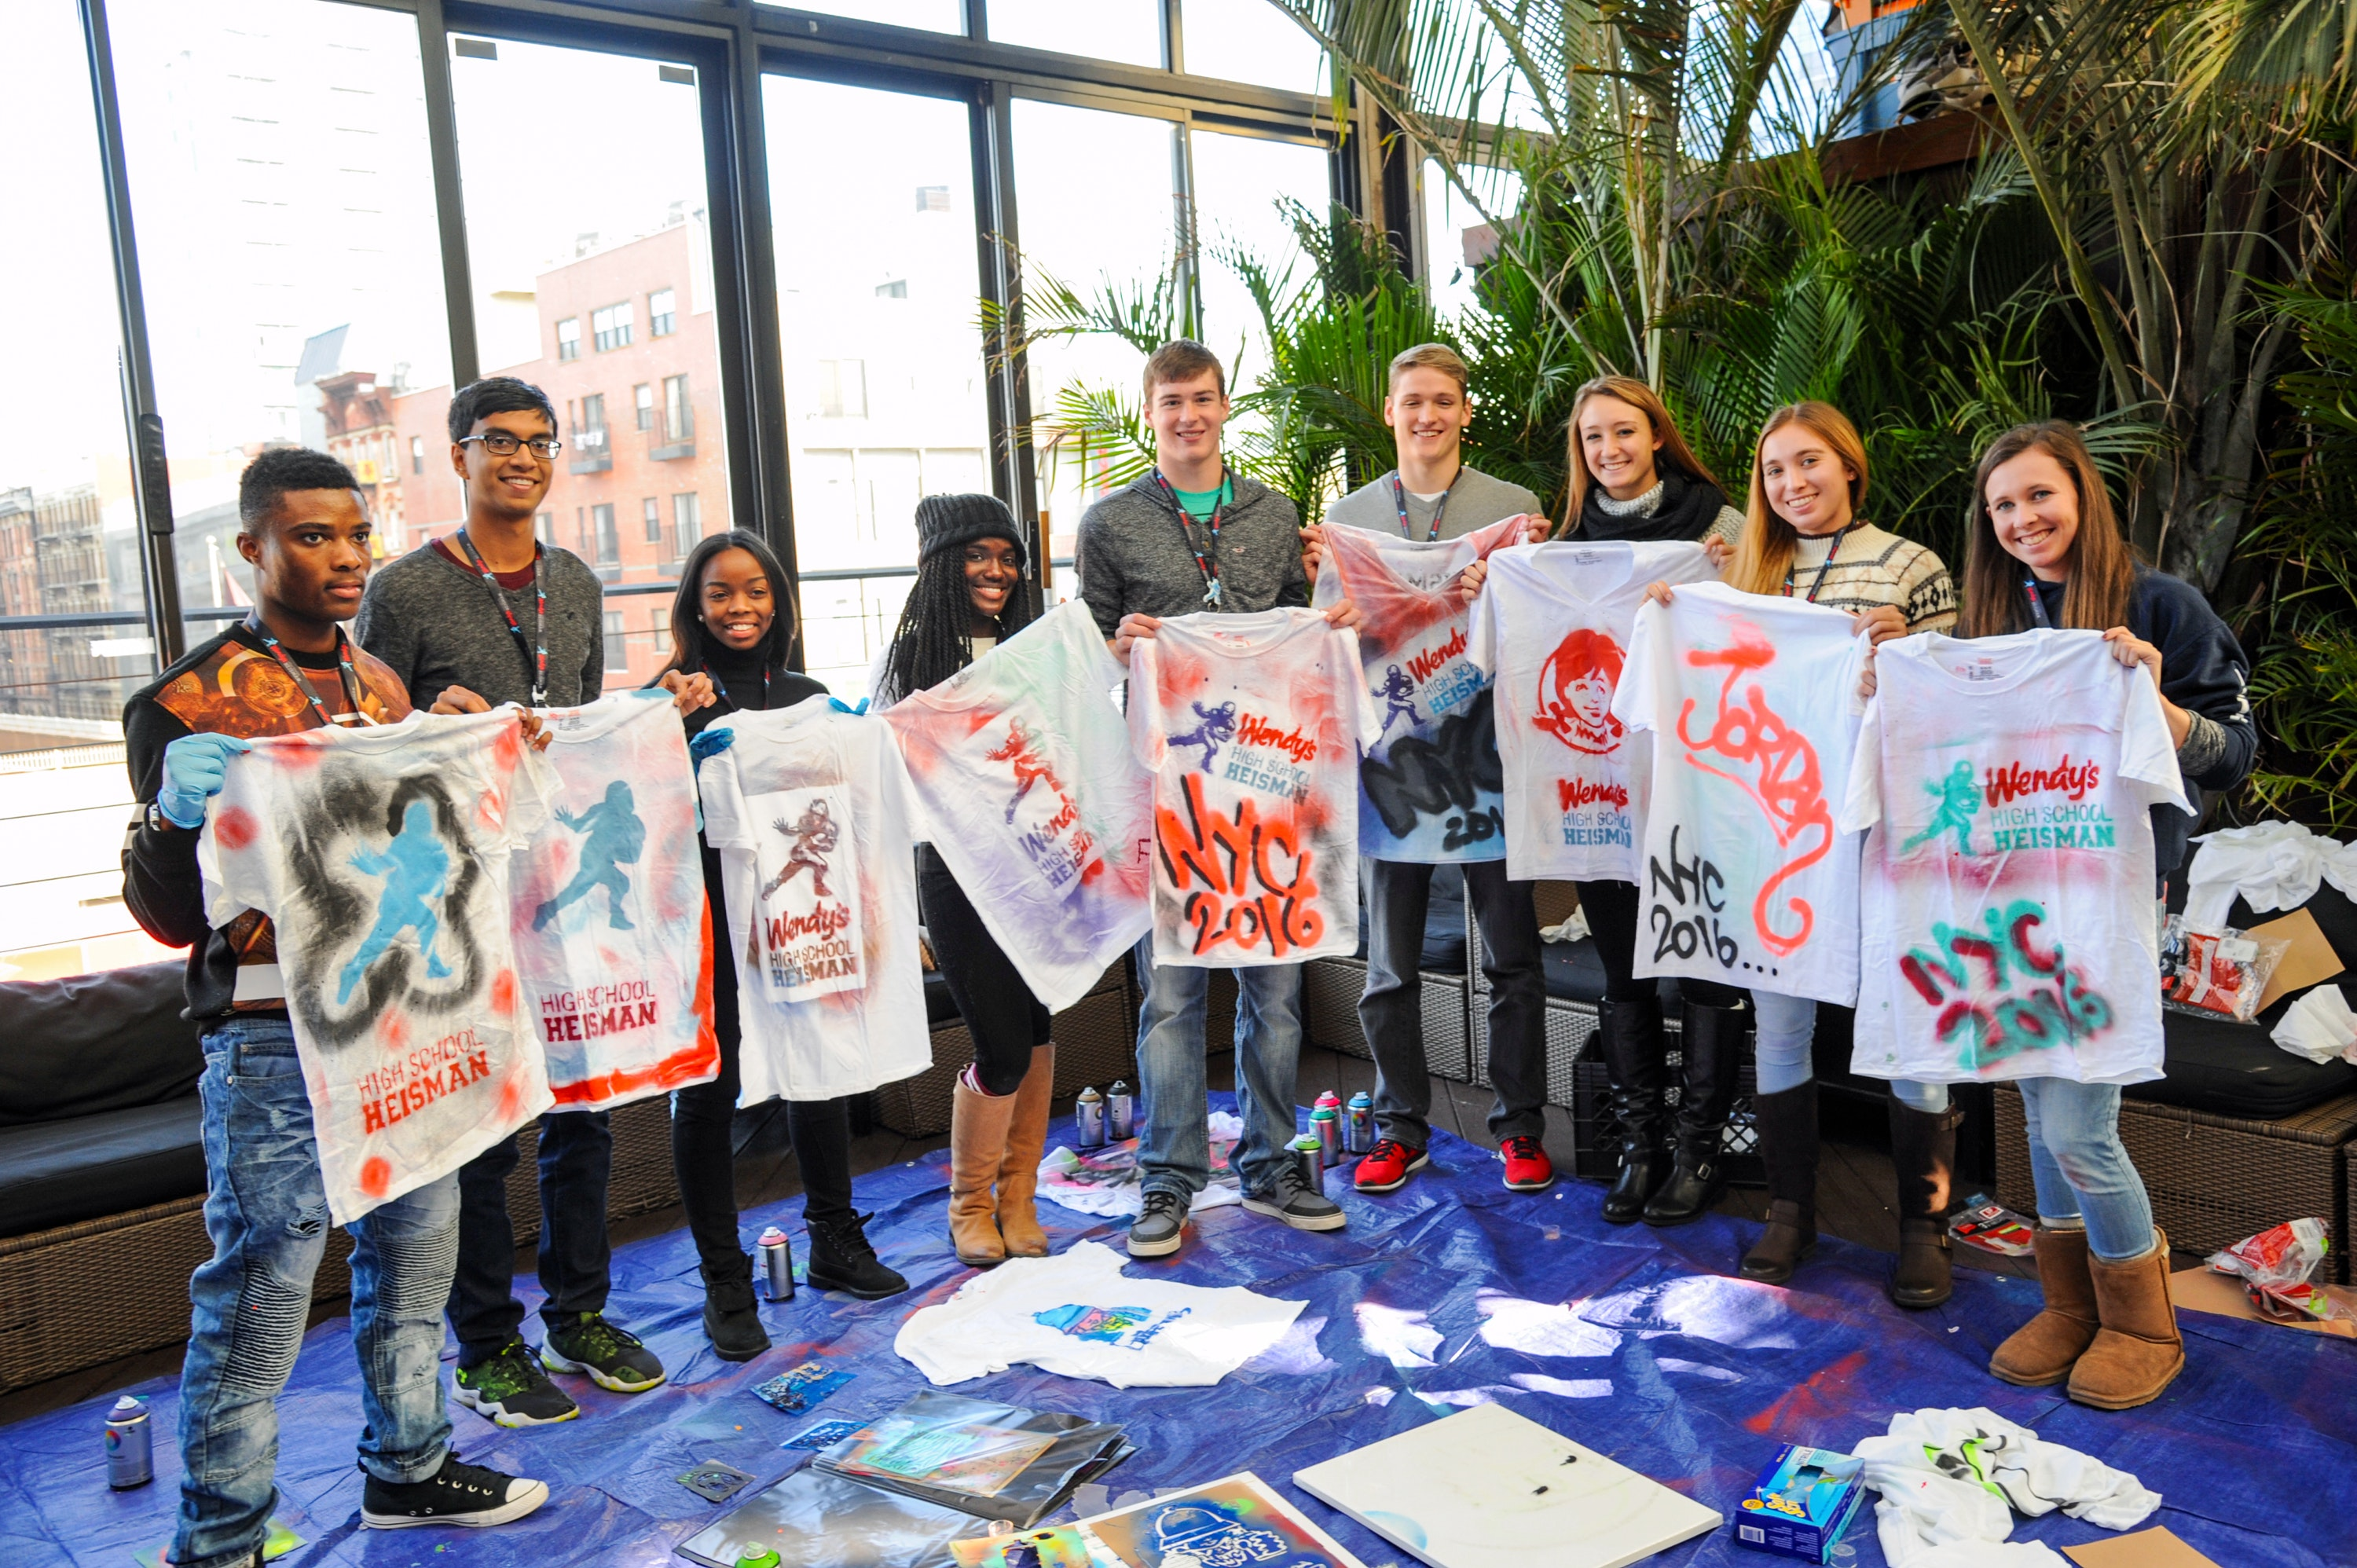 The finalists with their DIY custom T-shirts